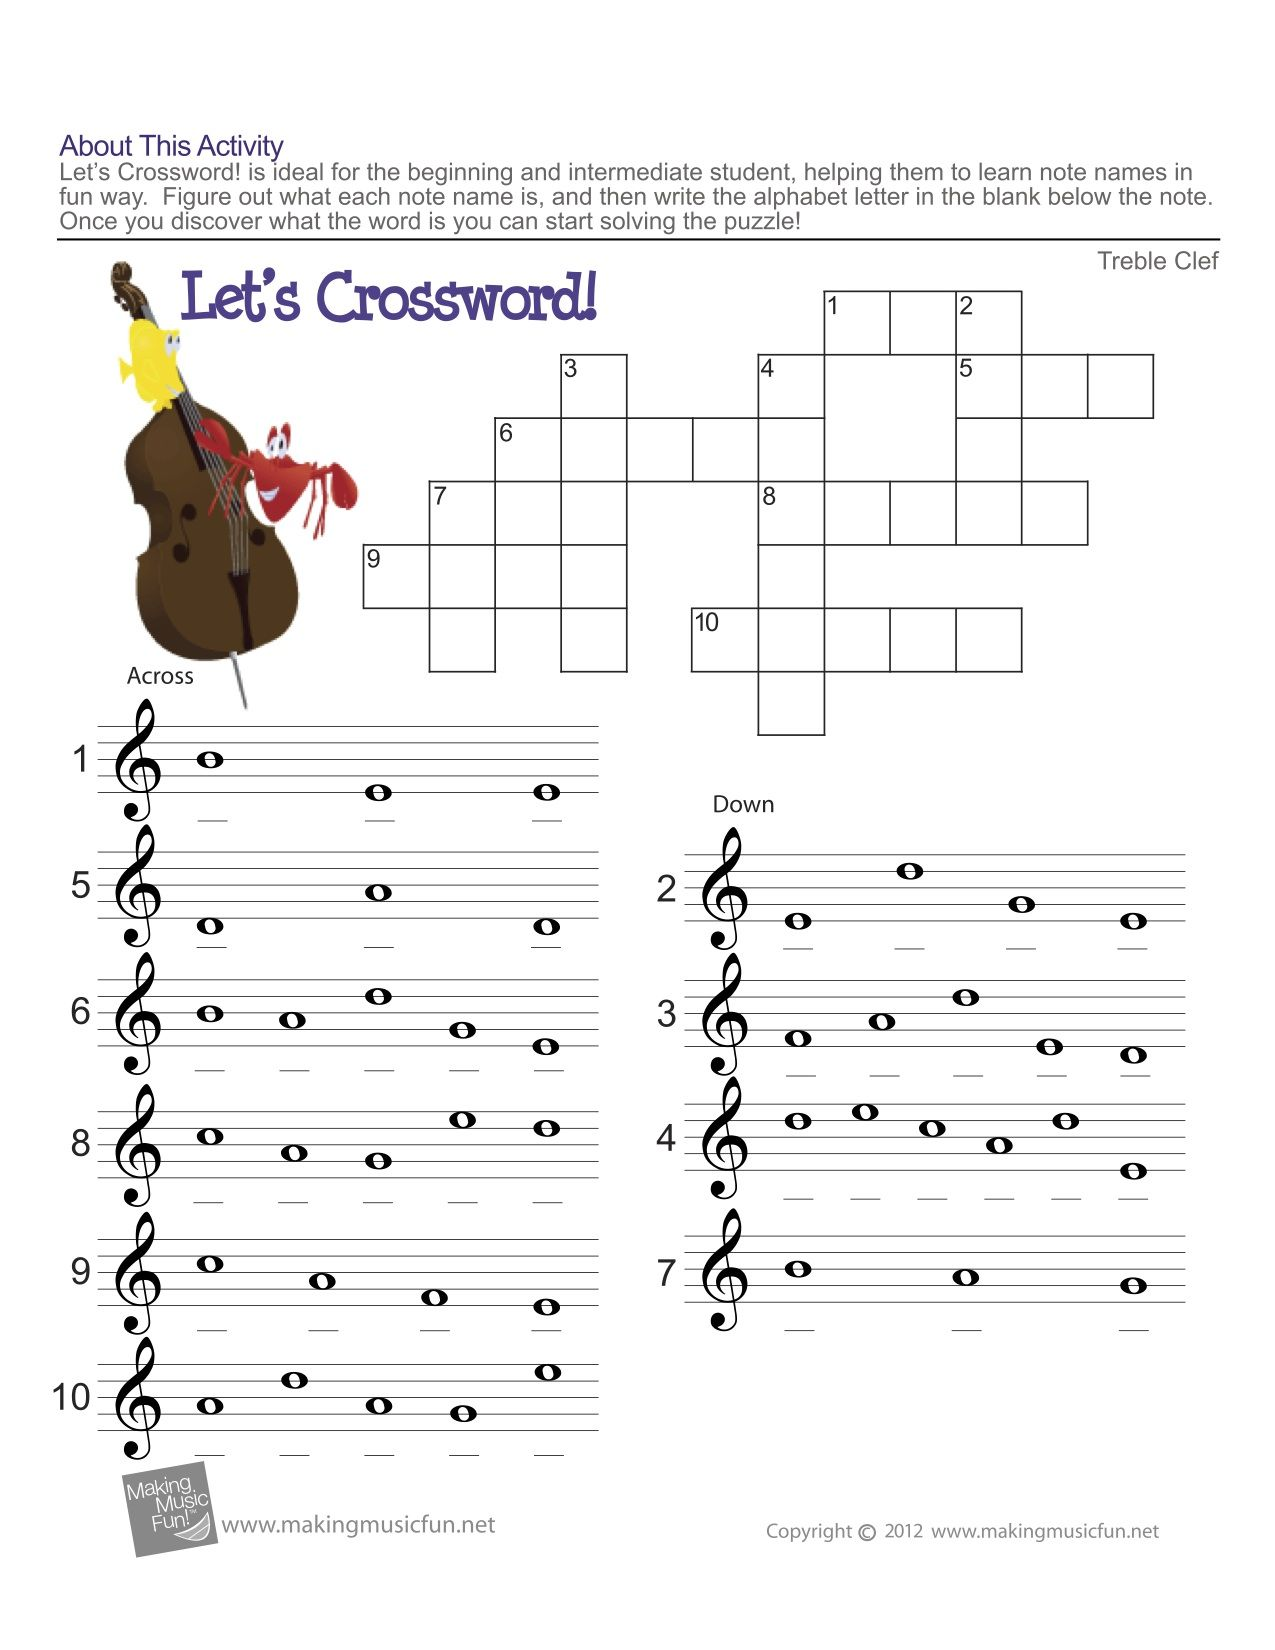 Worksheets Printable Music Theory Worksheets treble clef fun note reading easy music theory for middle school mike and i just discovered this new site were using with the graders year a ton of free worksheets beginne